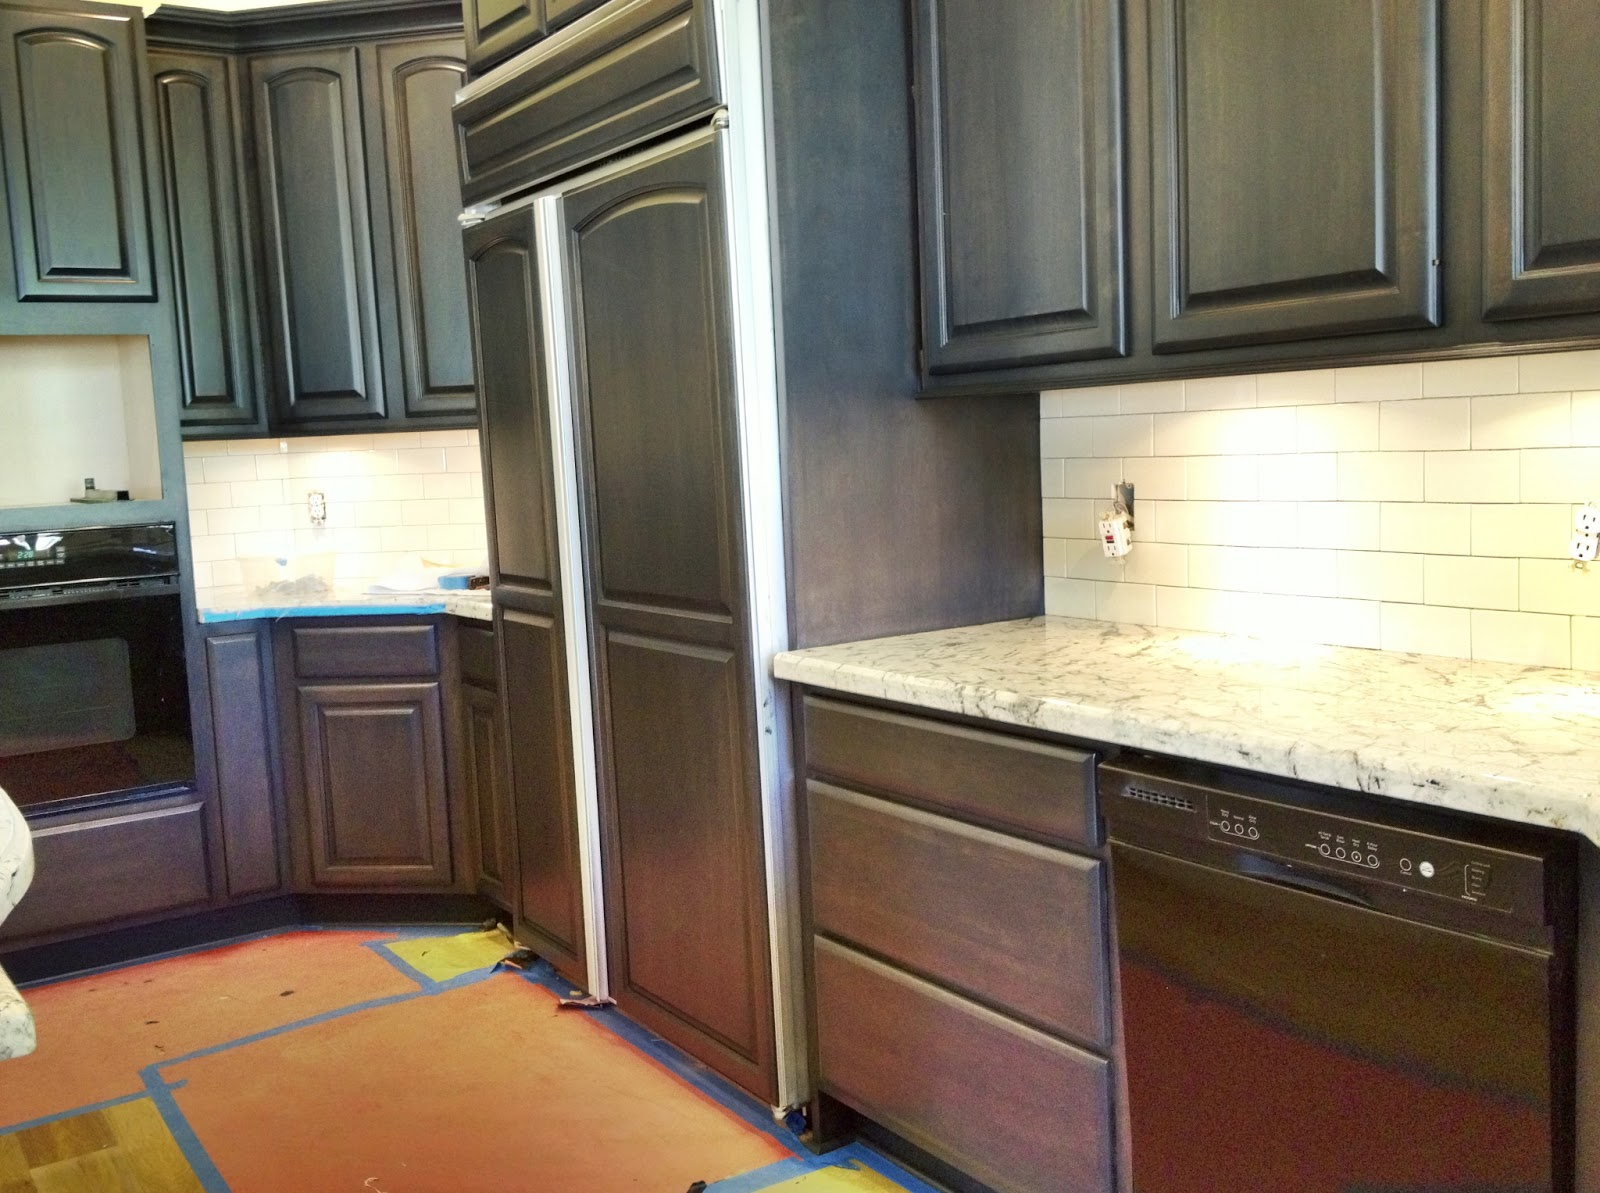 Refinishing Kitchen Cabinets Without Stripping Ideas How To Refinish Kitchen Cabinets Without Stripping